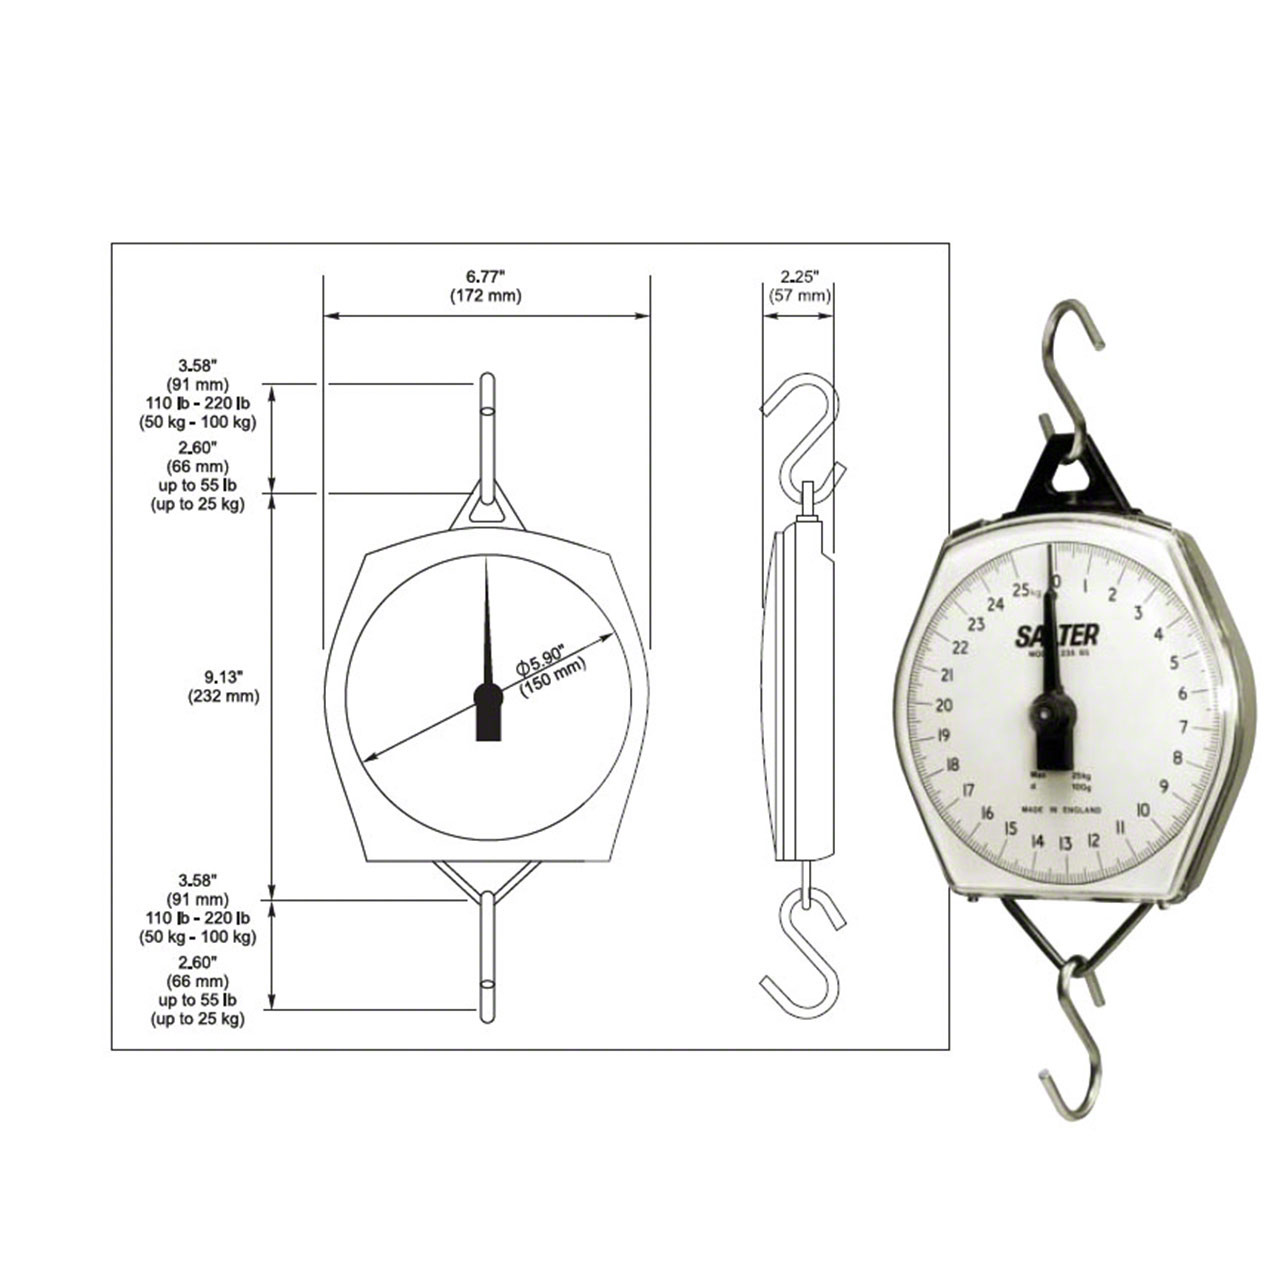 Dimensions of Mechanical Hanging Scale